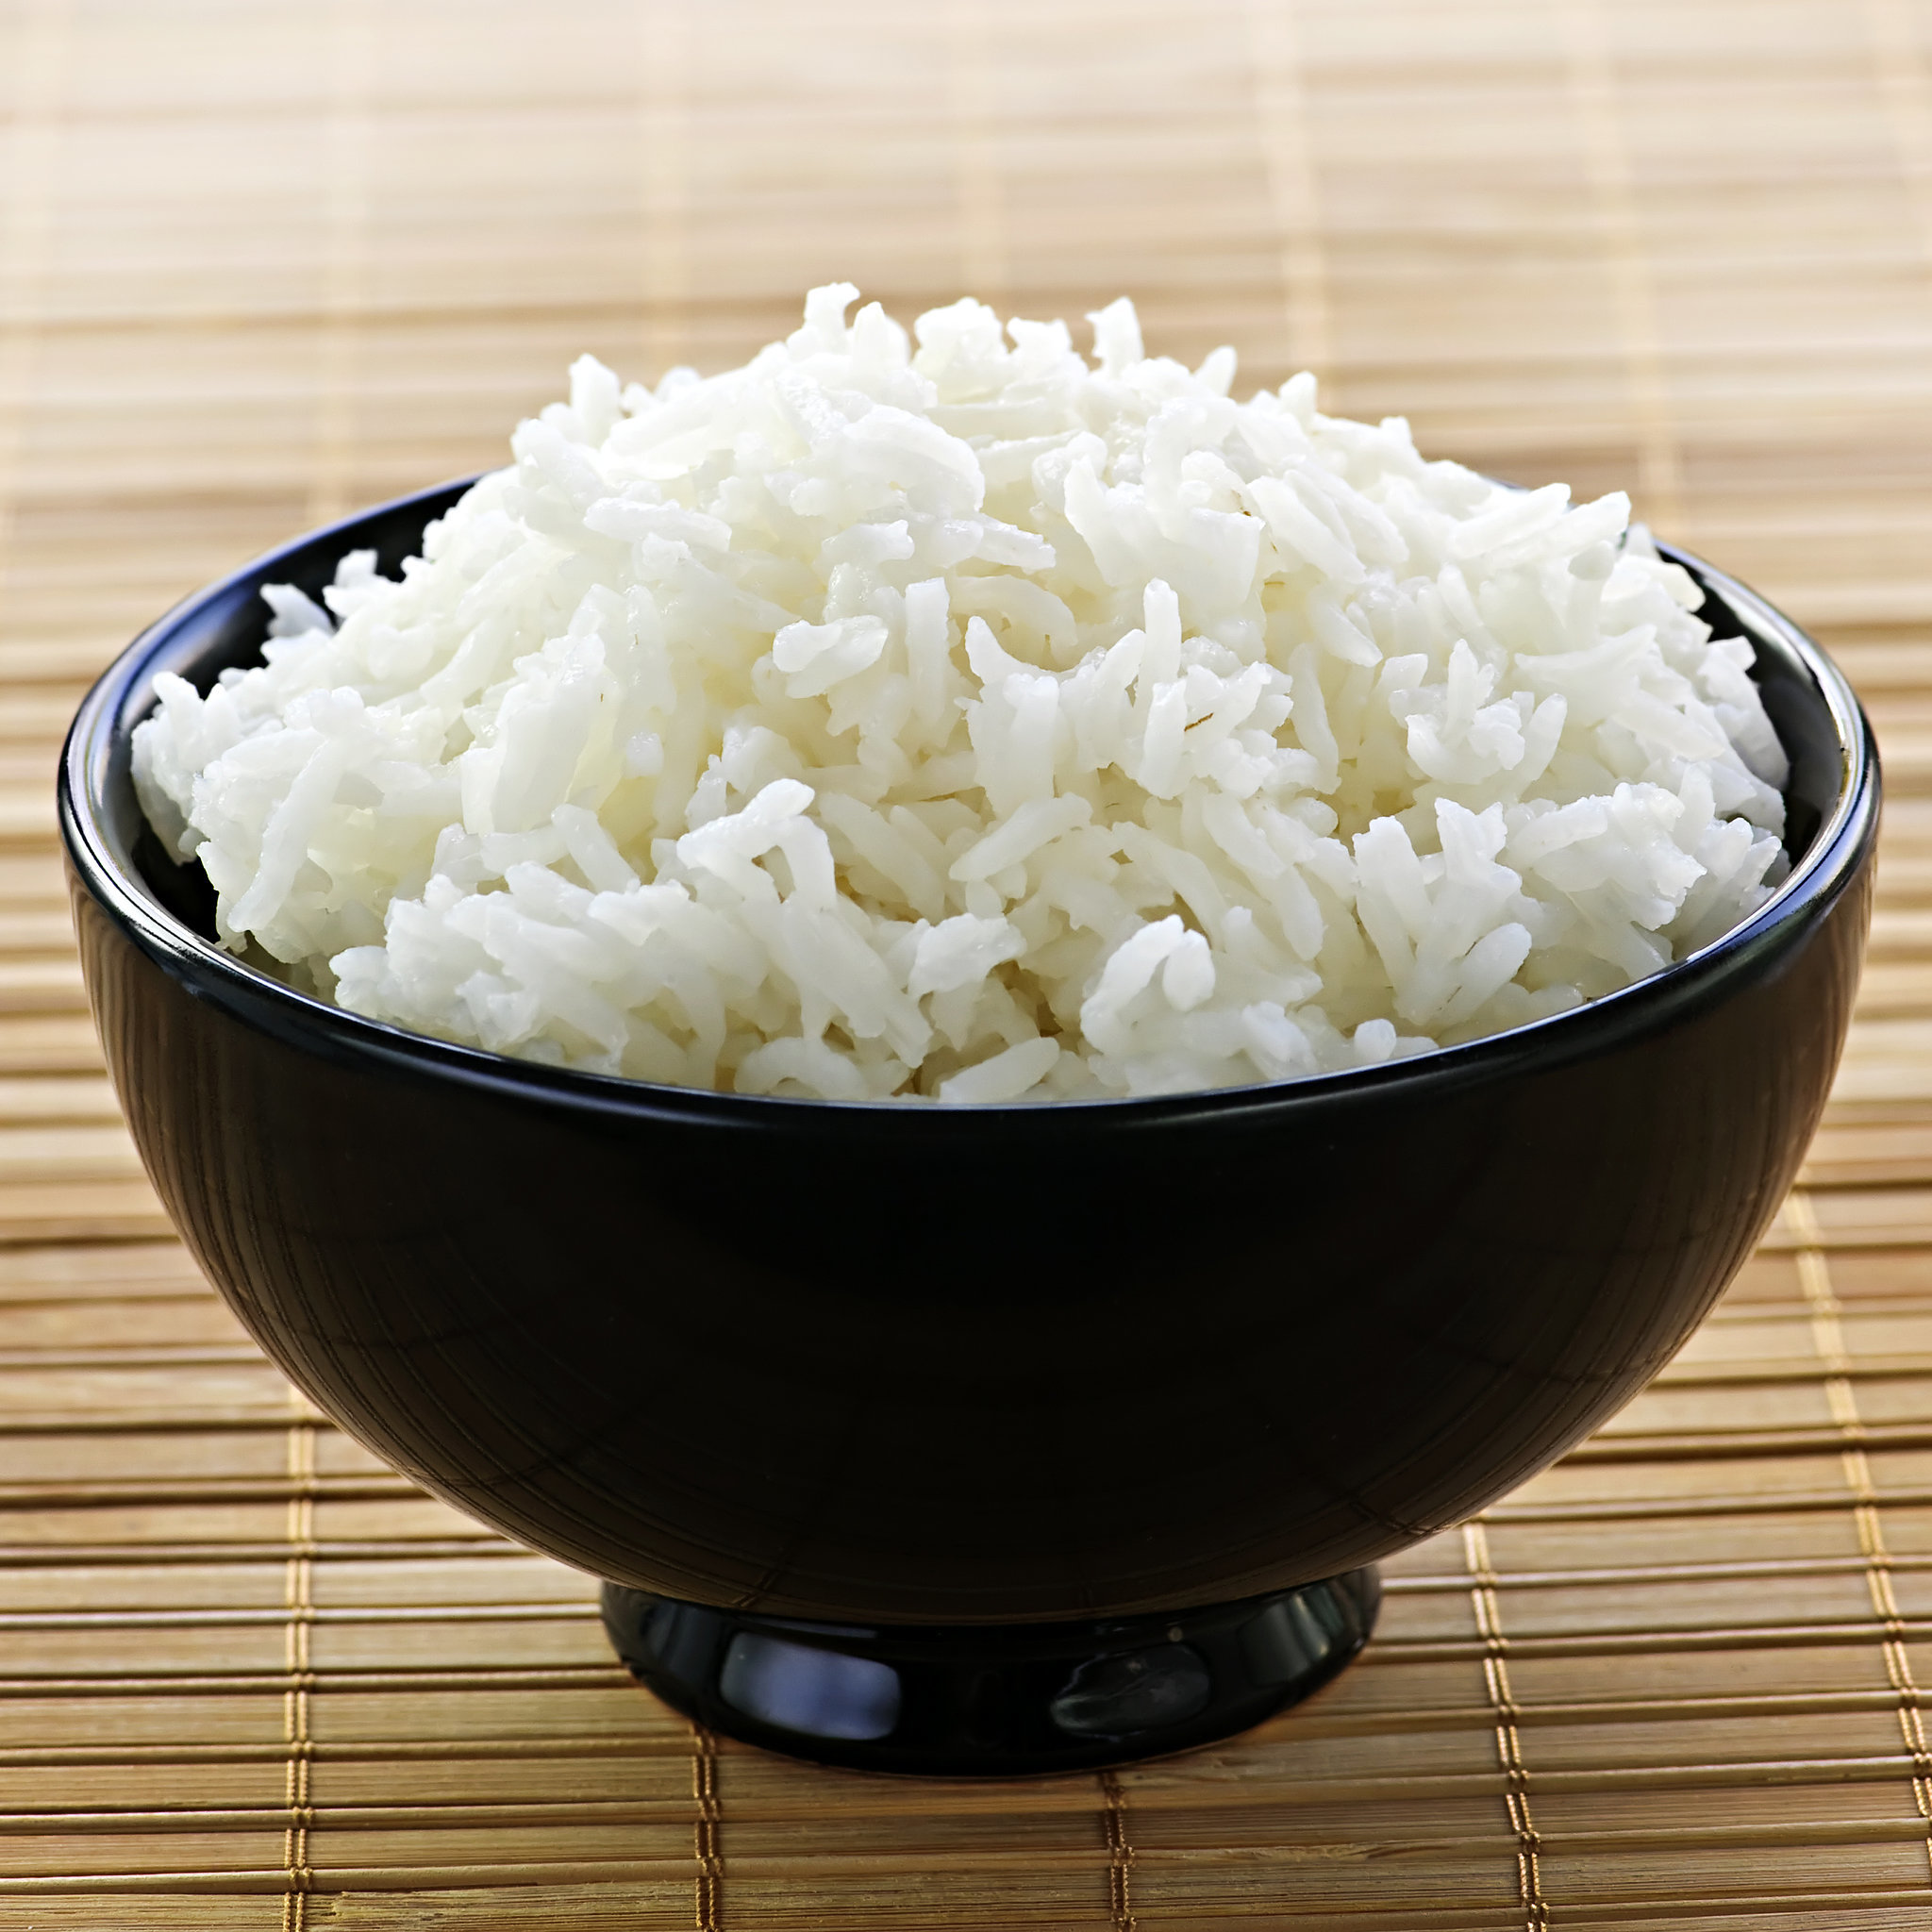 Is This Rice Or Not?